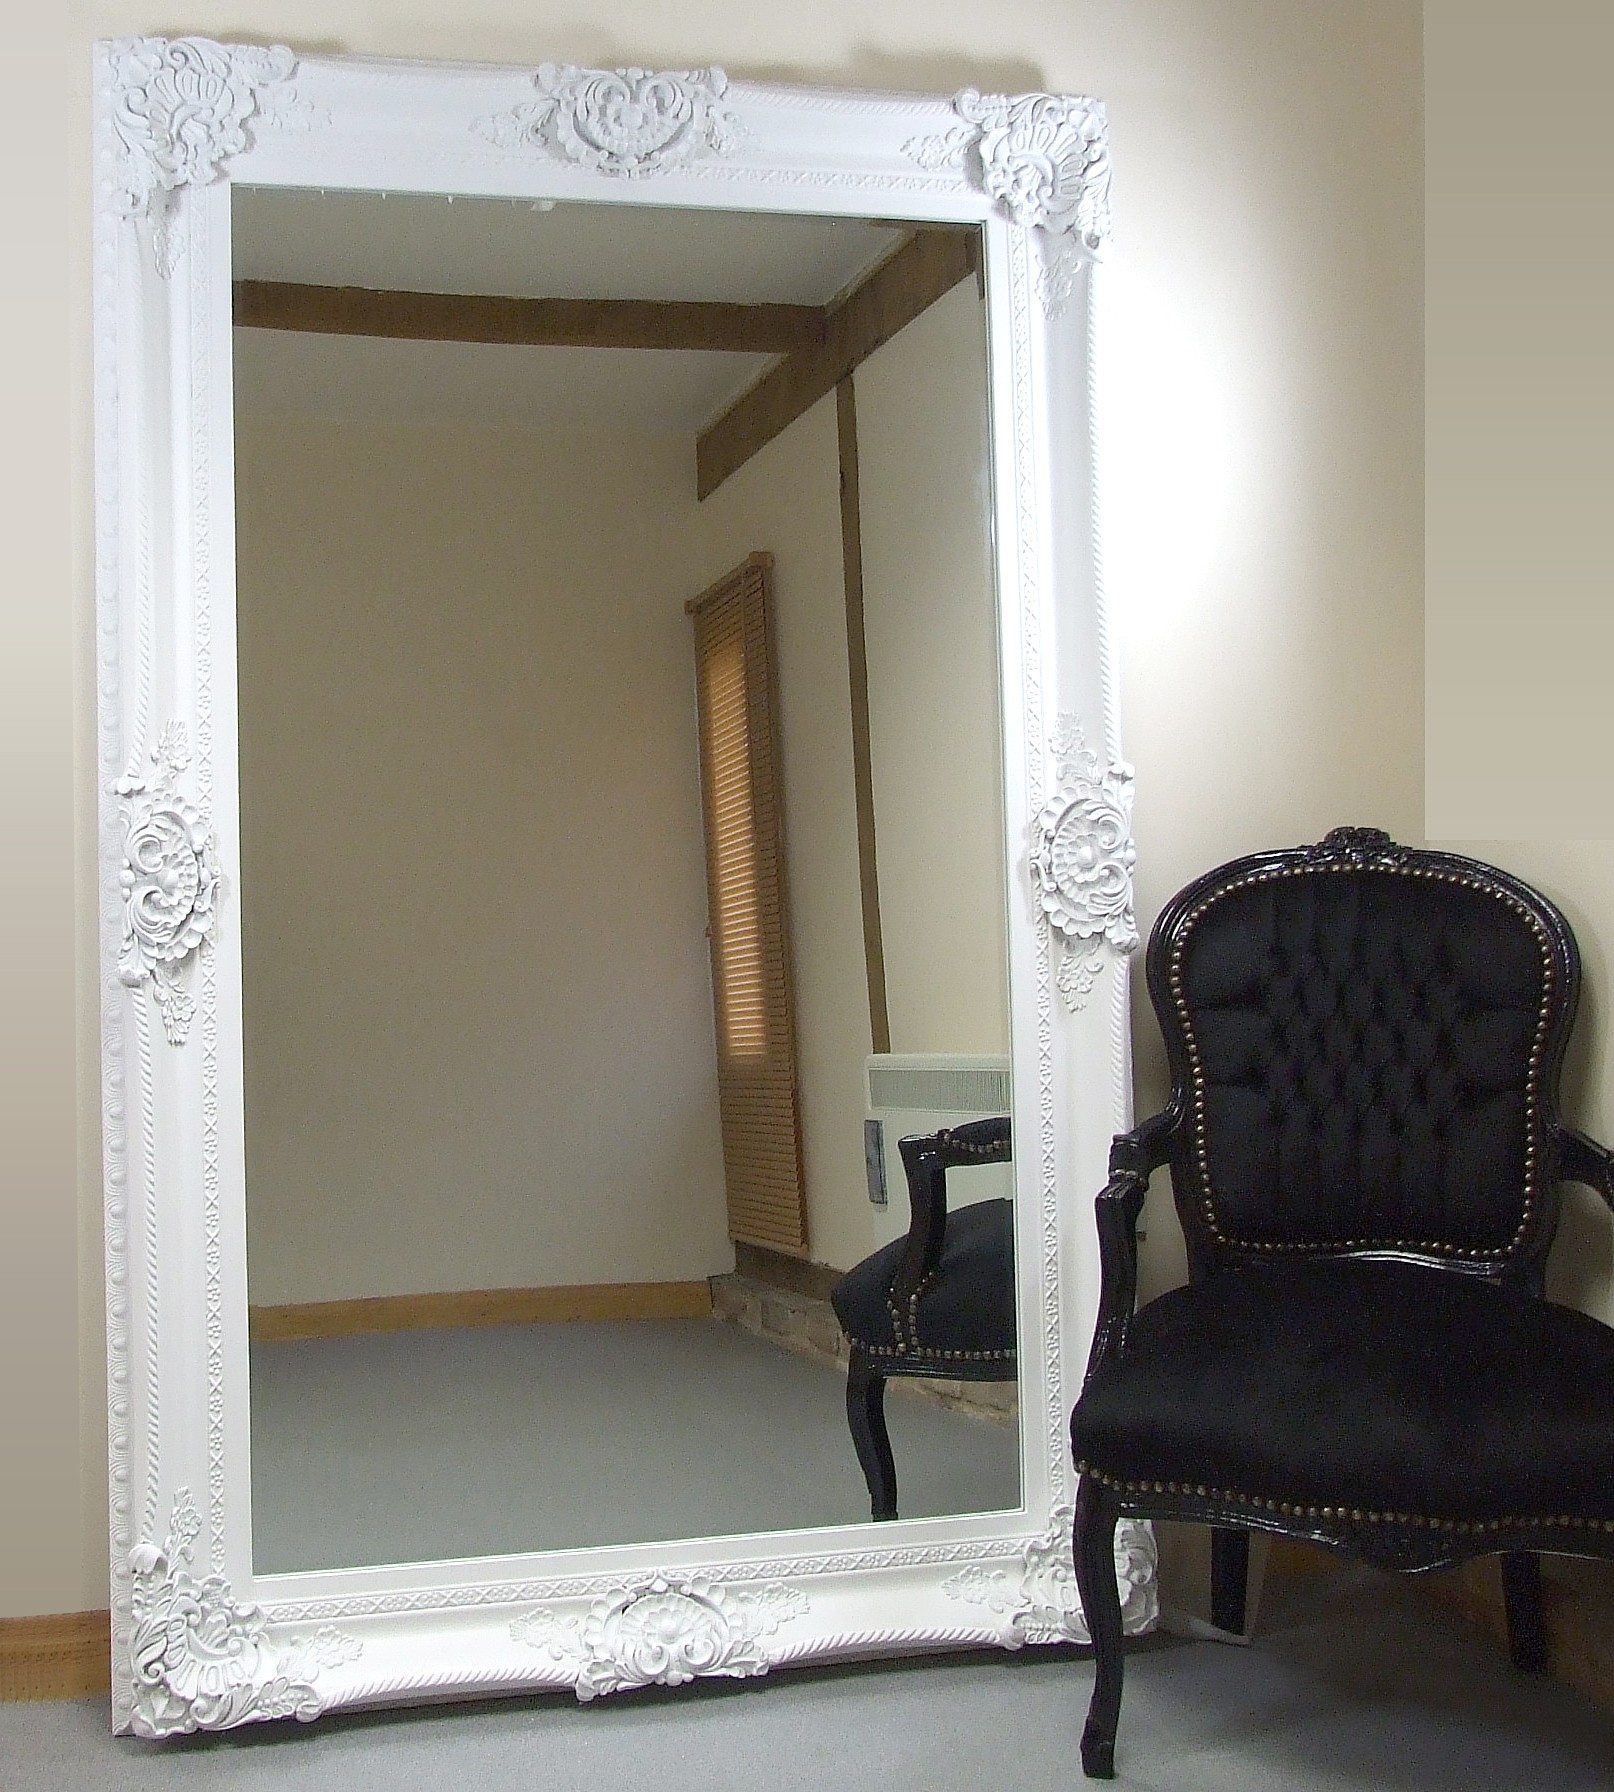 Seville Ornate Extra Large French Full Length Wall Leaner Mirror With Regard To Large French Mirror (Image 15 of 15)